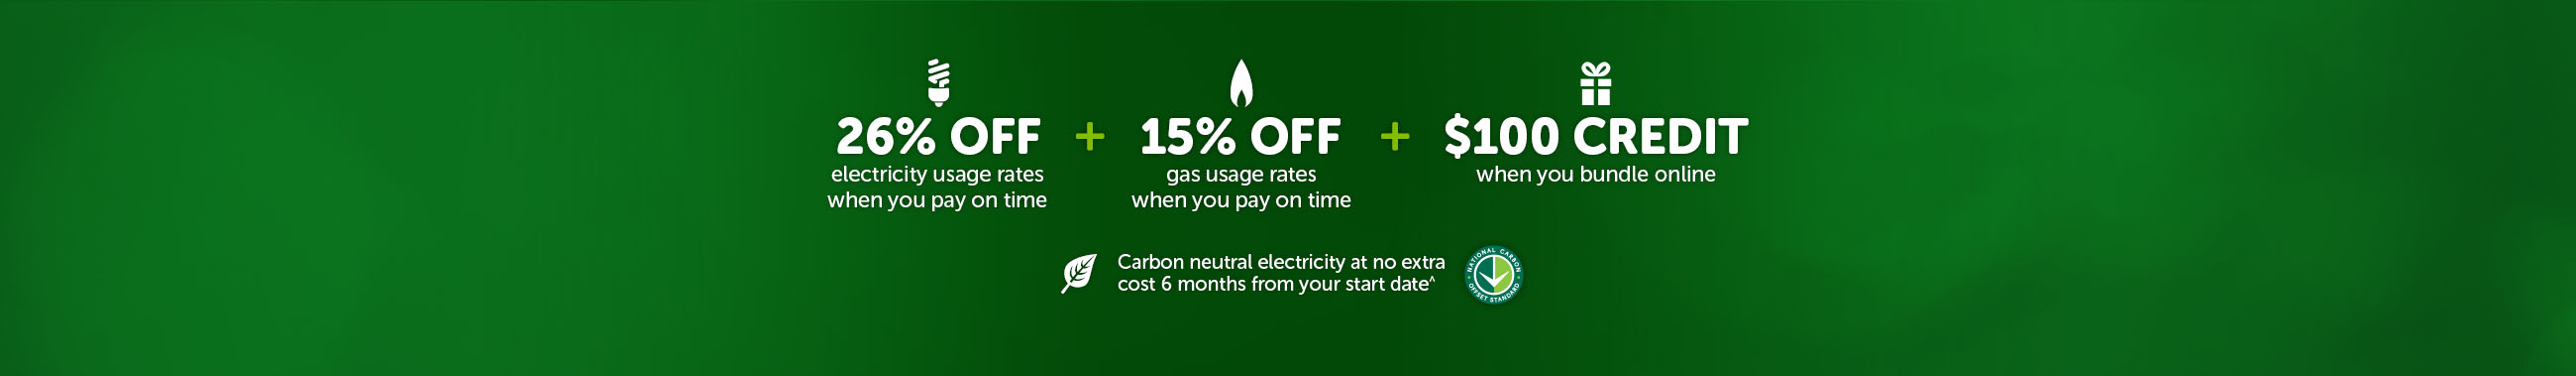 26% off electricity usage rates when you pay on time plus 15% off gas usage rates when you pay on time plus $100 credit when you bundle online and Carbon neutral electricity at no extra cost 6 months from your start date^